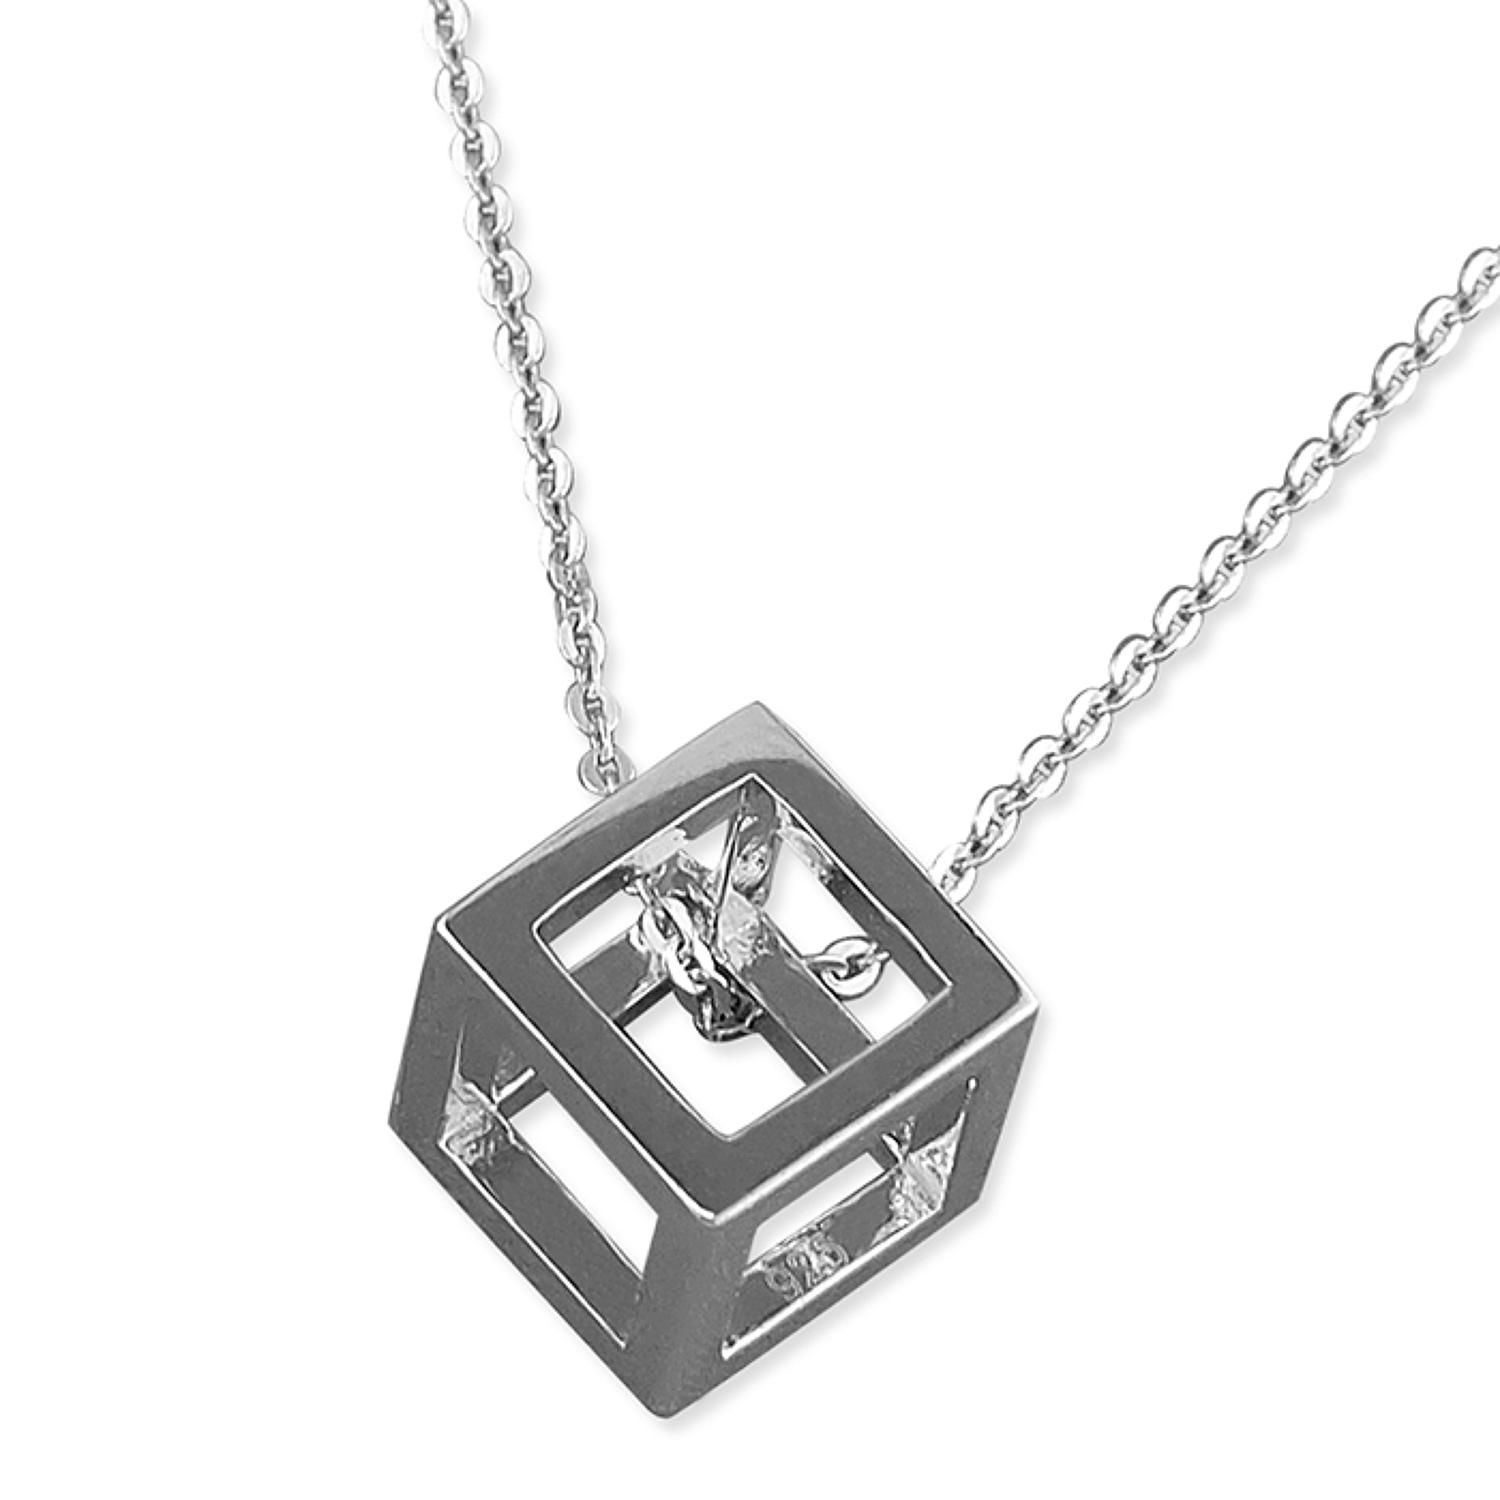 Sterling Silver Open Cube Pendant